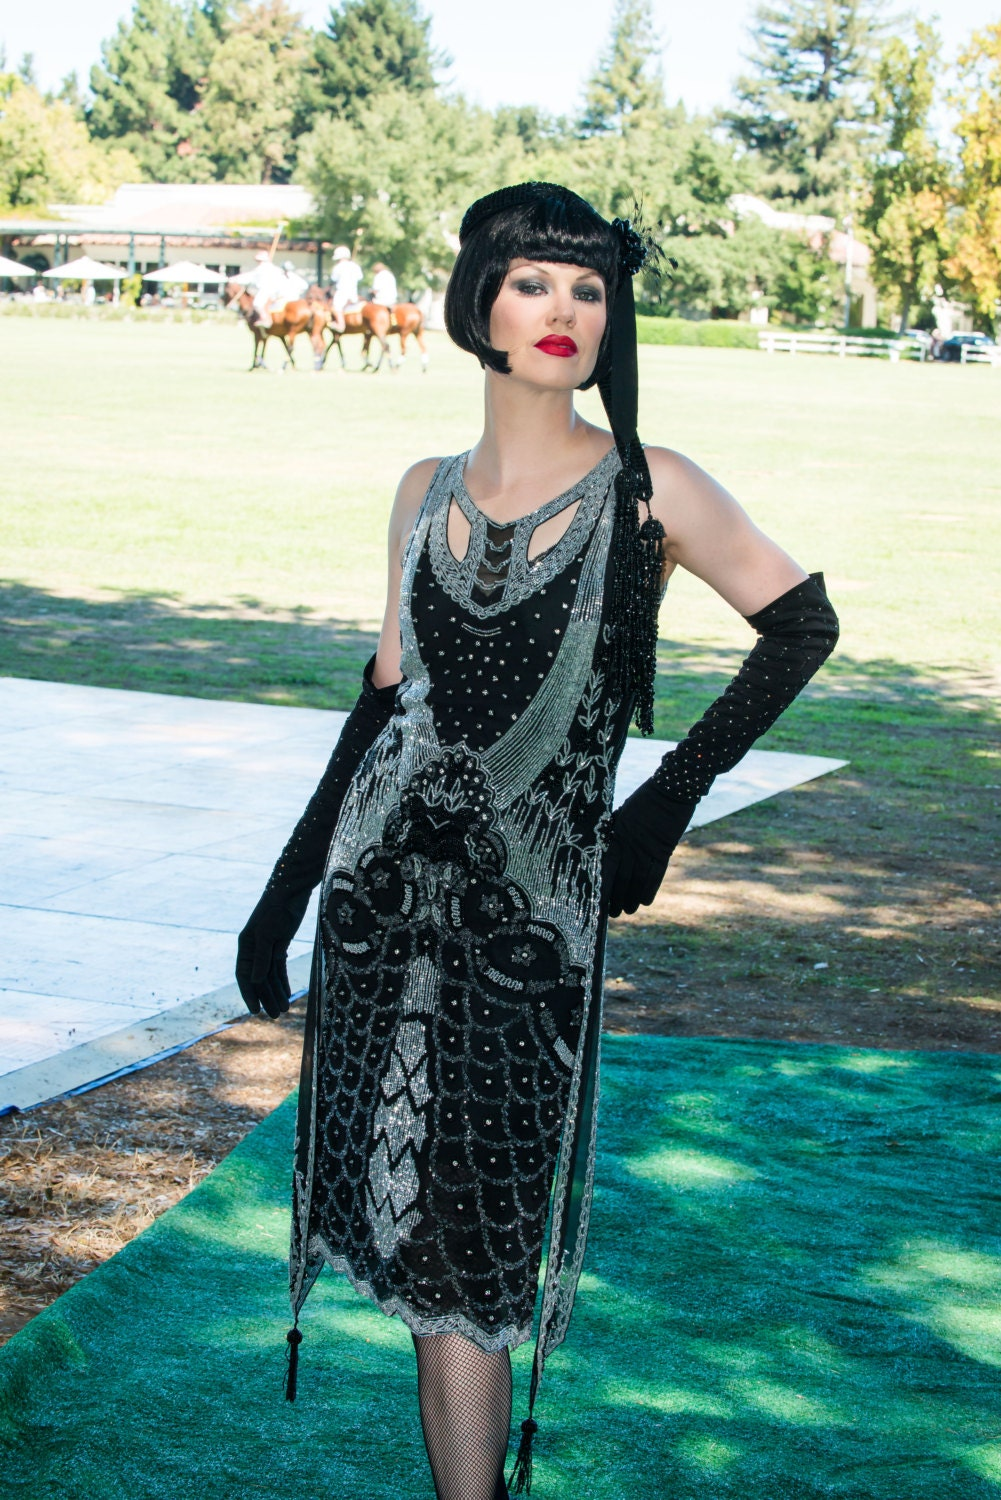 Best 1920s Prom Dresses – Great Gatsby Style Gowns 1920s Style Edwardian Dress $495.00 AT vintagedancer.com